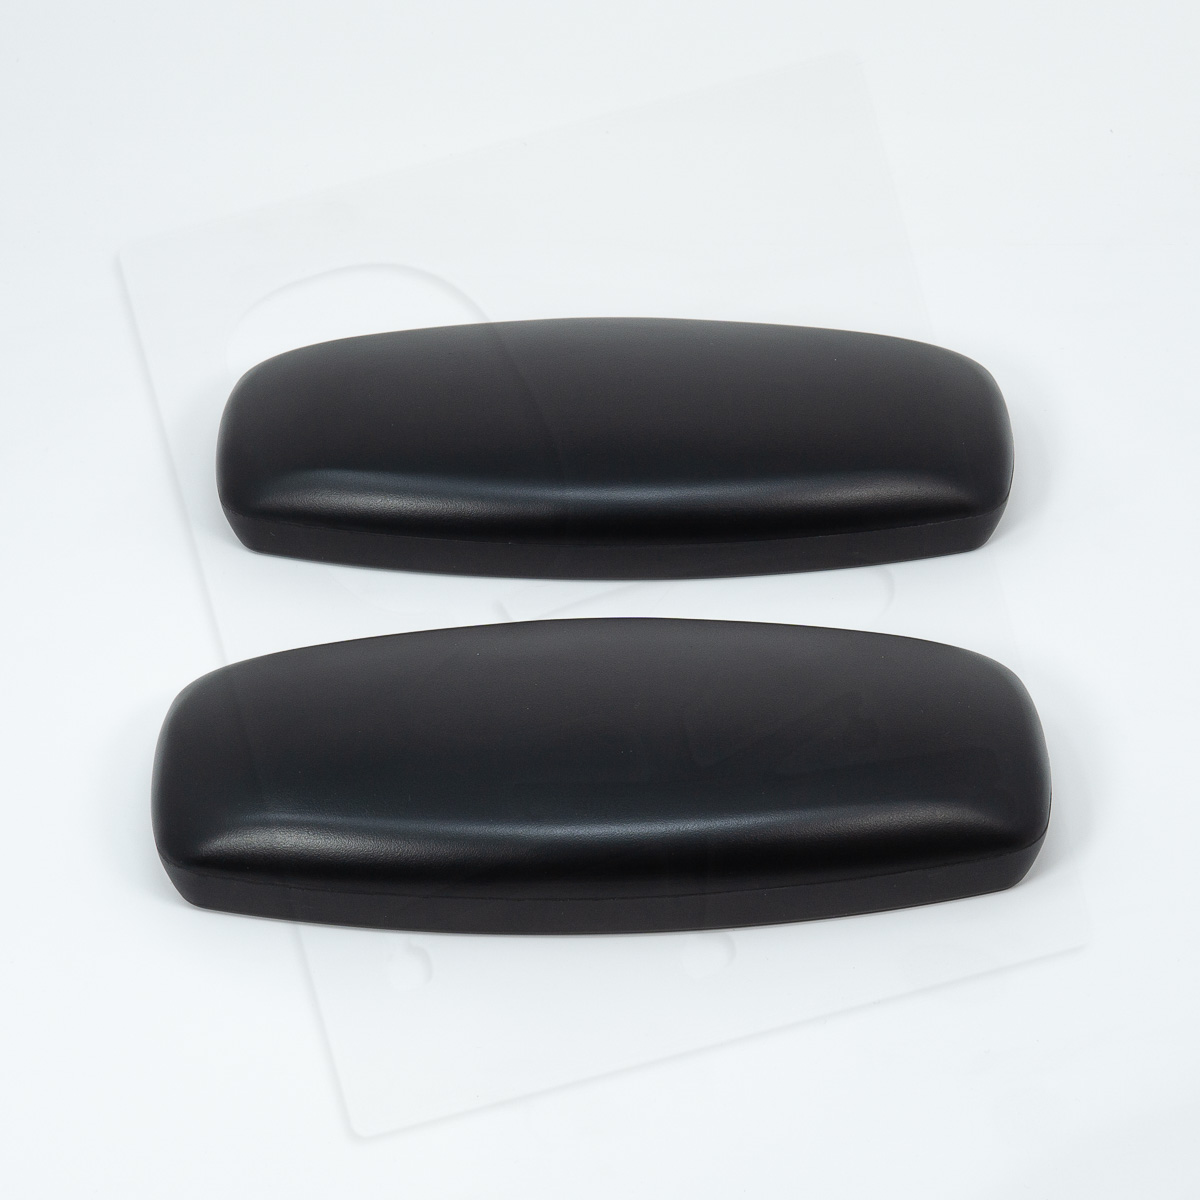 Crandall Office Furniture Aftermarket Steelcase V1 Leap Arm Pads 004